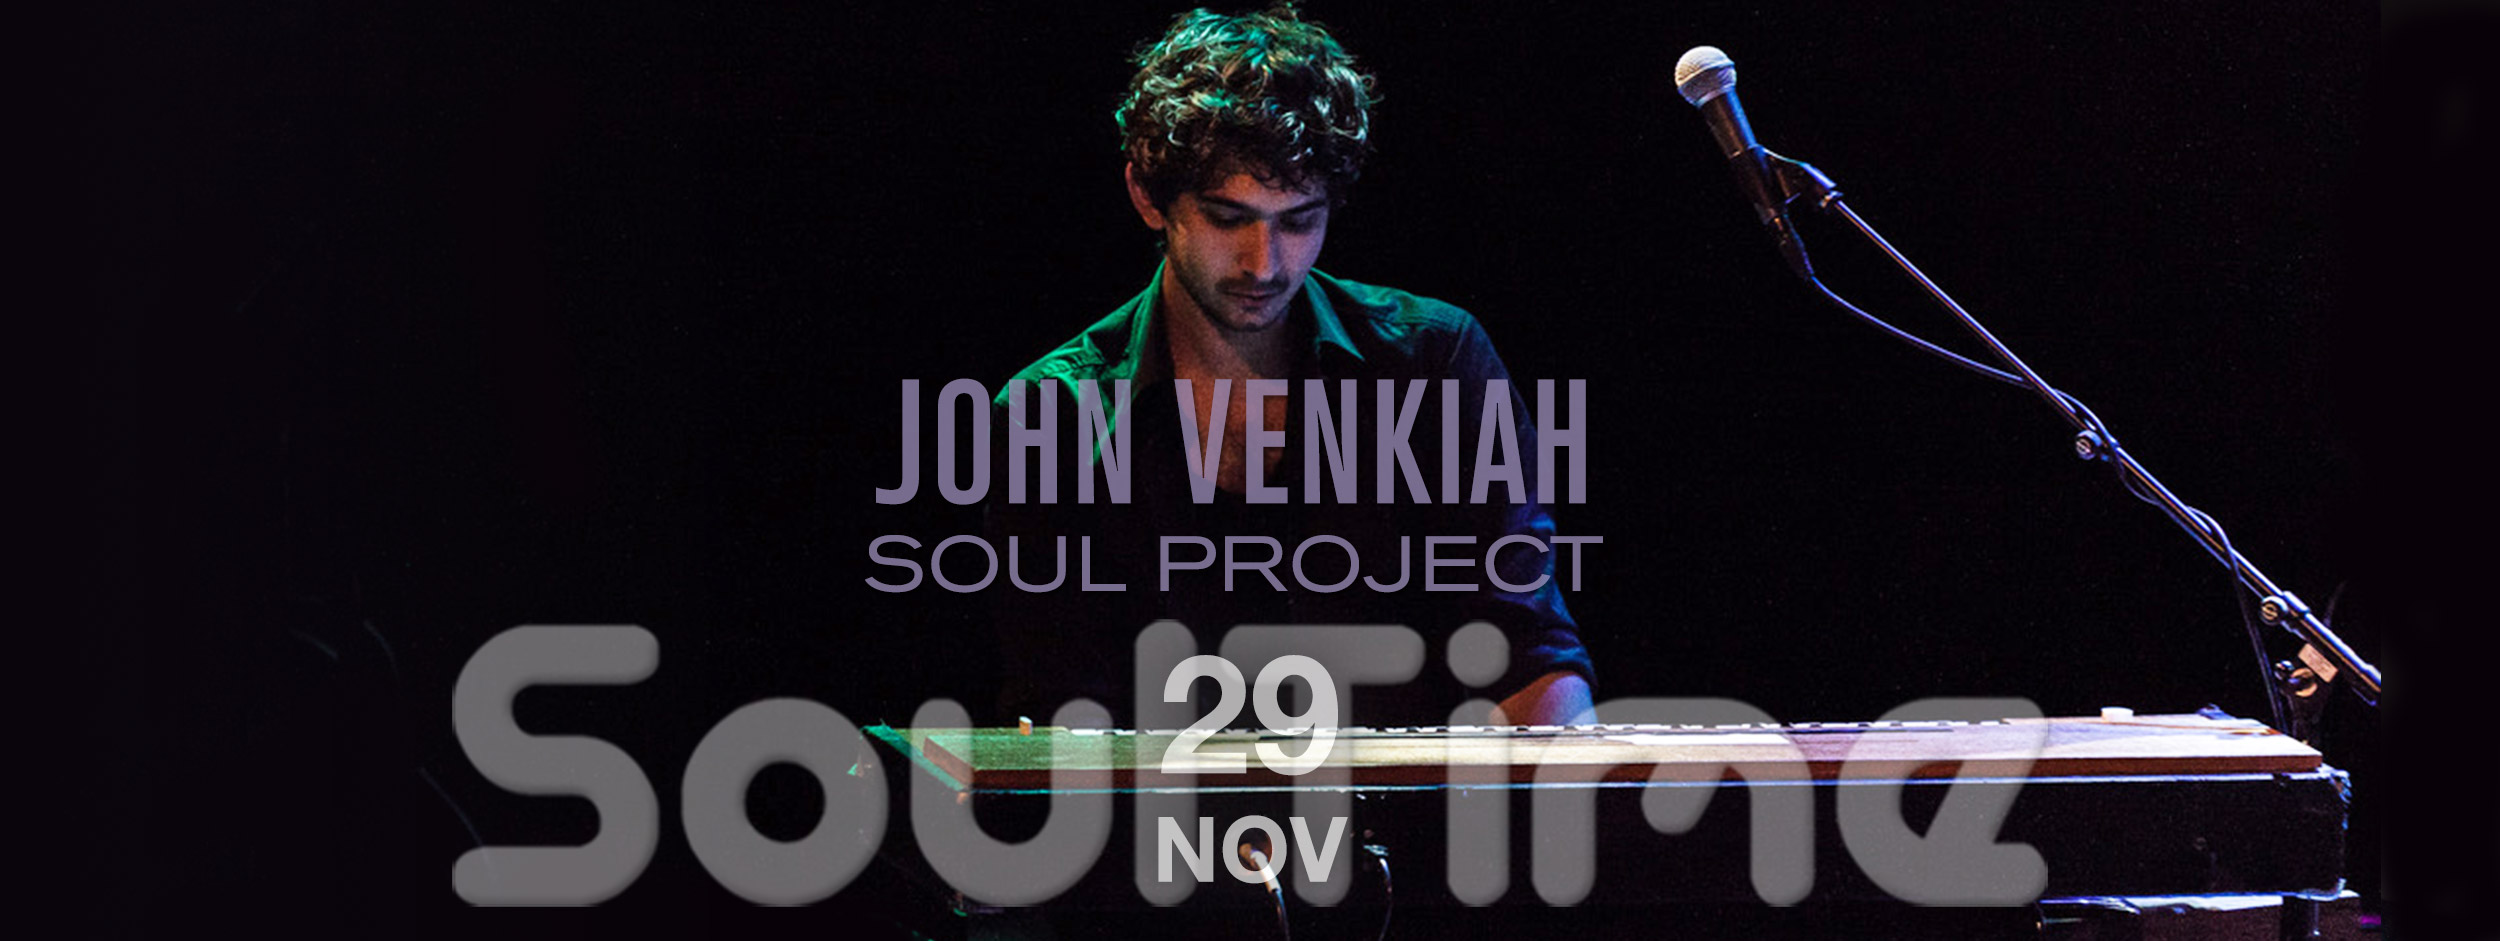 johnvenkiah-november-2017b